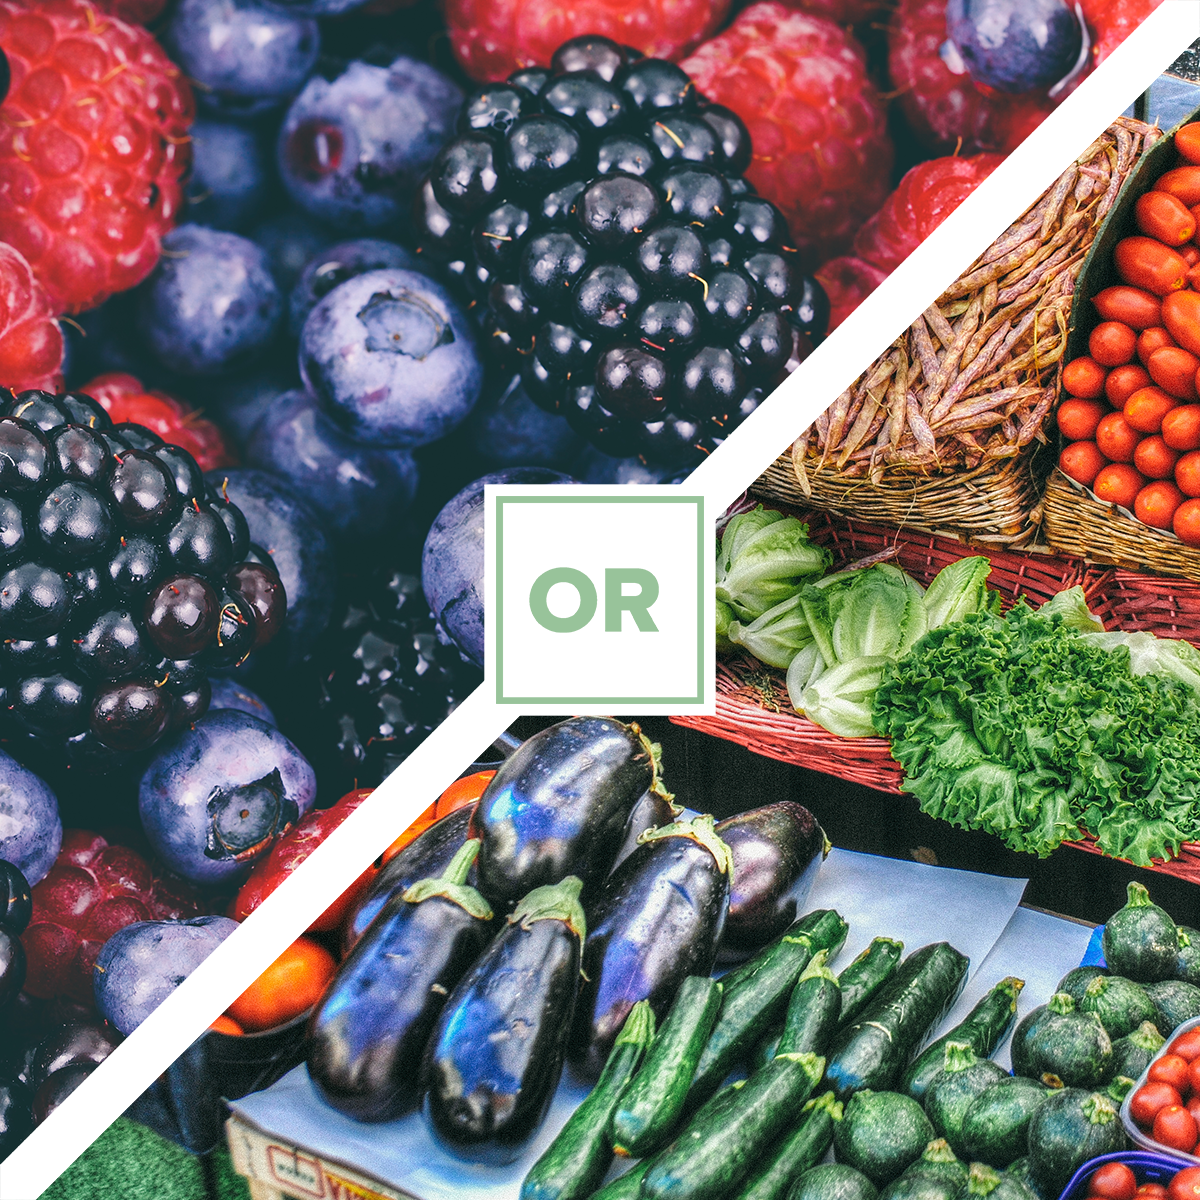 POLL: Which would you rather eat - Fruits or Veggies?